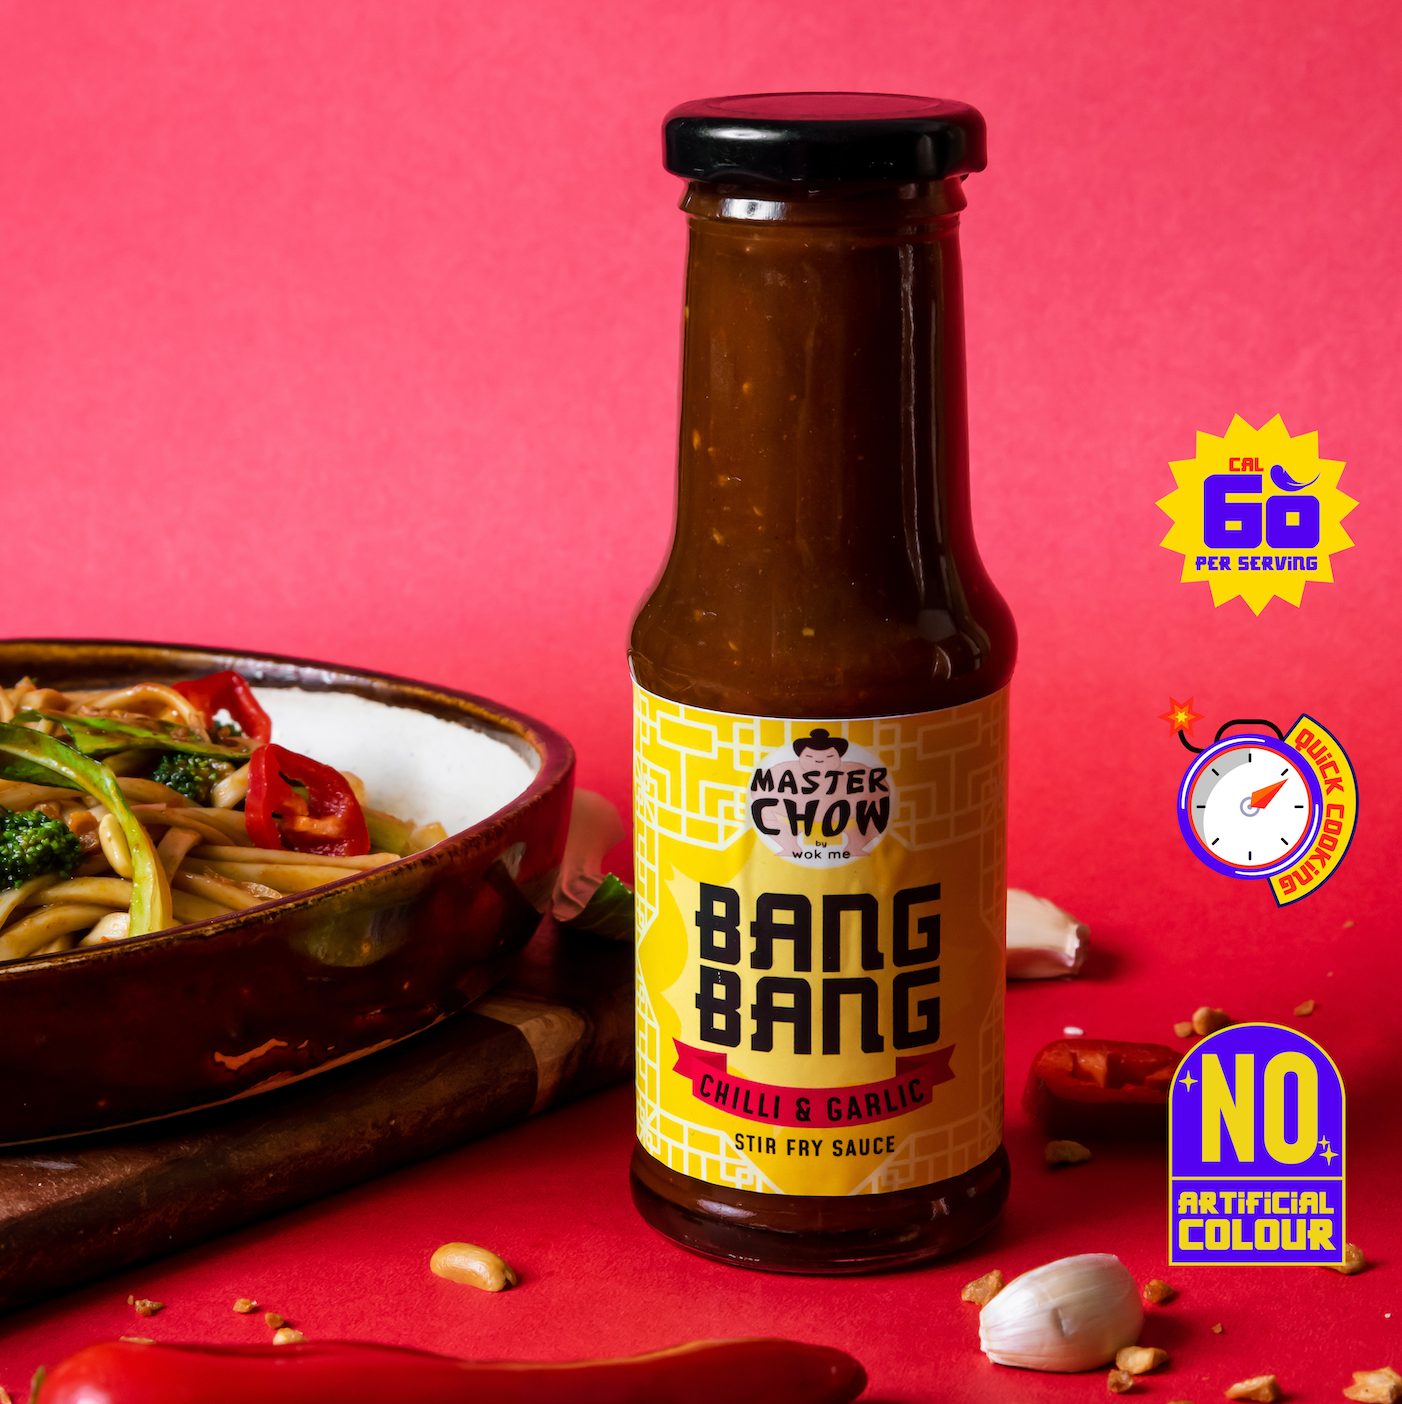 Bang Bang - Chilli & Garlic stir fry sauce